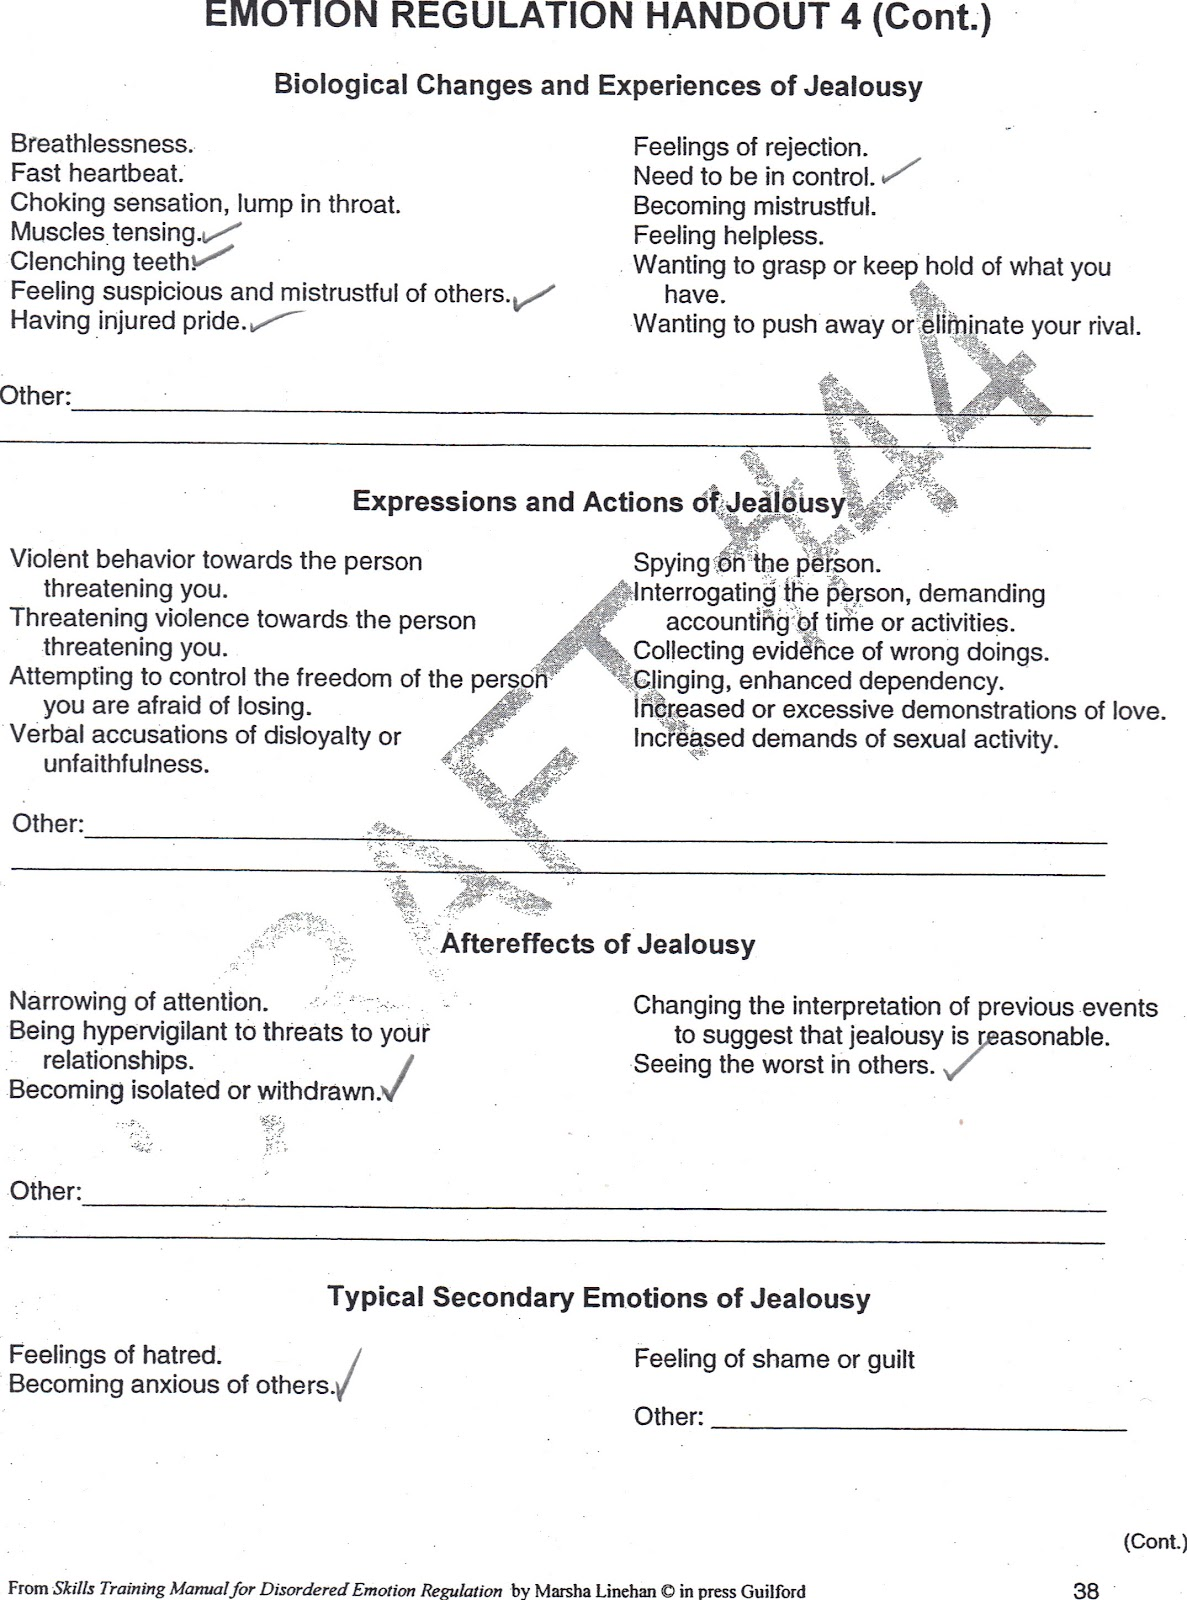 Healing From BPD Borderline Personality Disorder Blog Jealousy – Emotion Regulation Worksheet